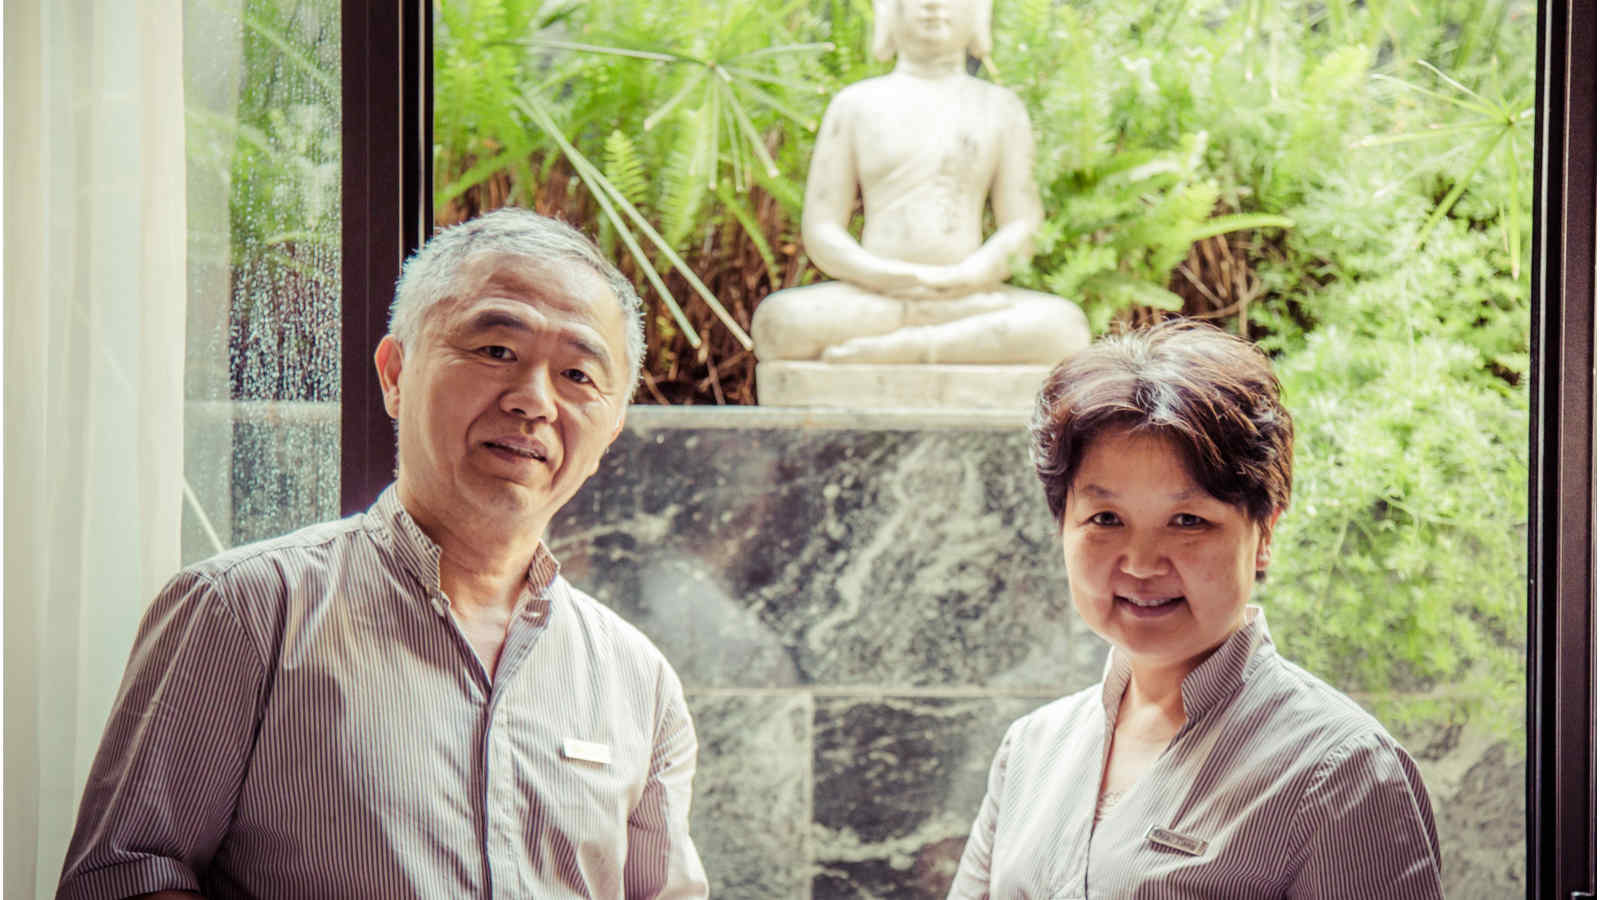 The greater experts on Chinese Medicine Treatments in Europe at Arabella Spa Majorca